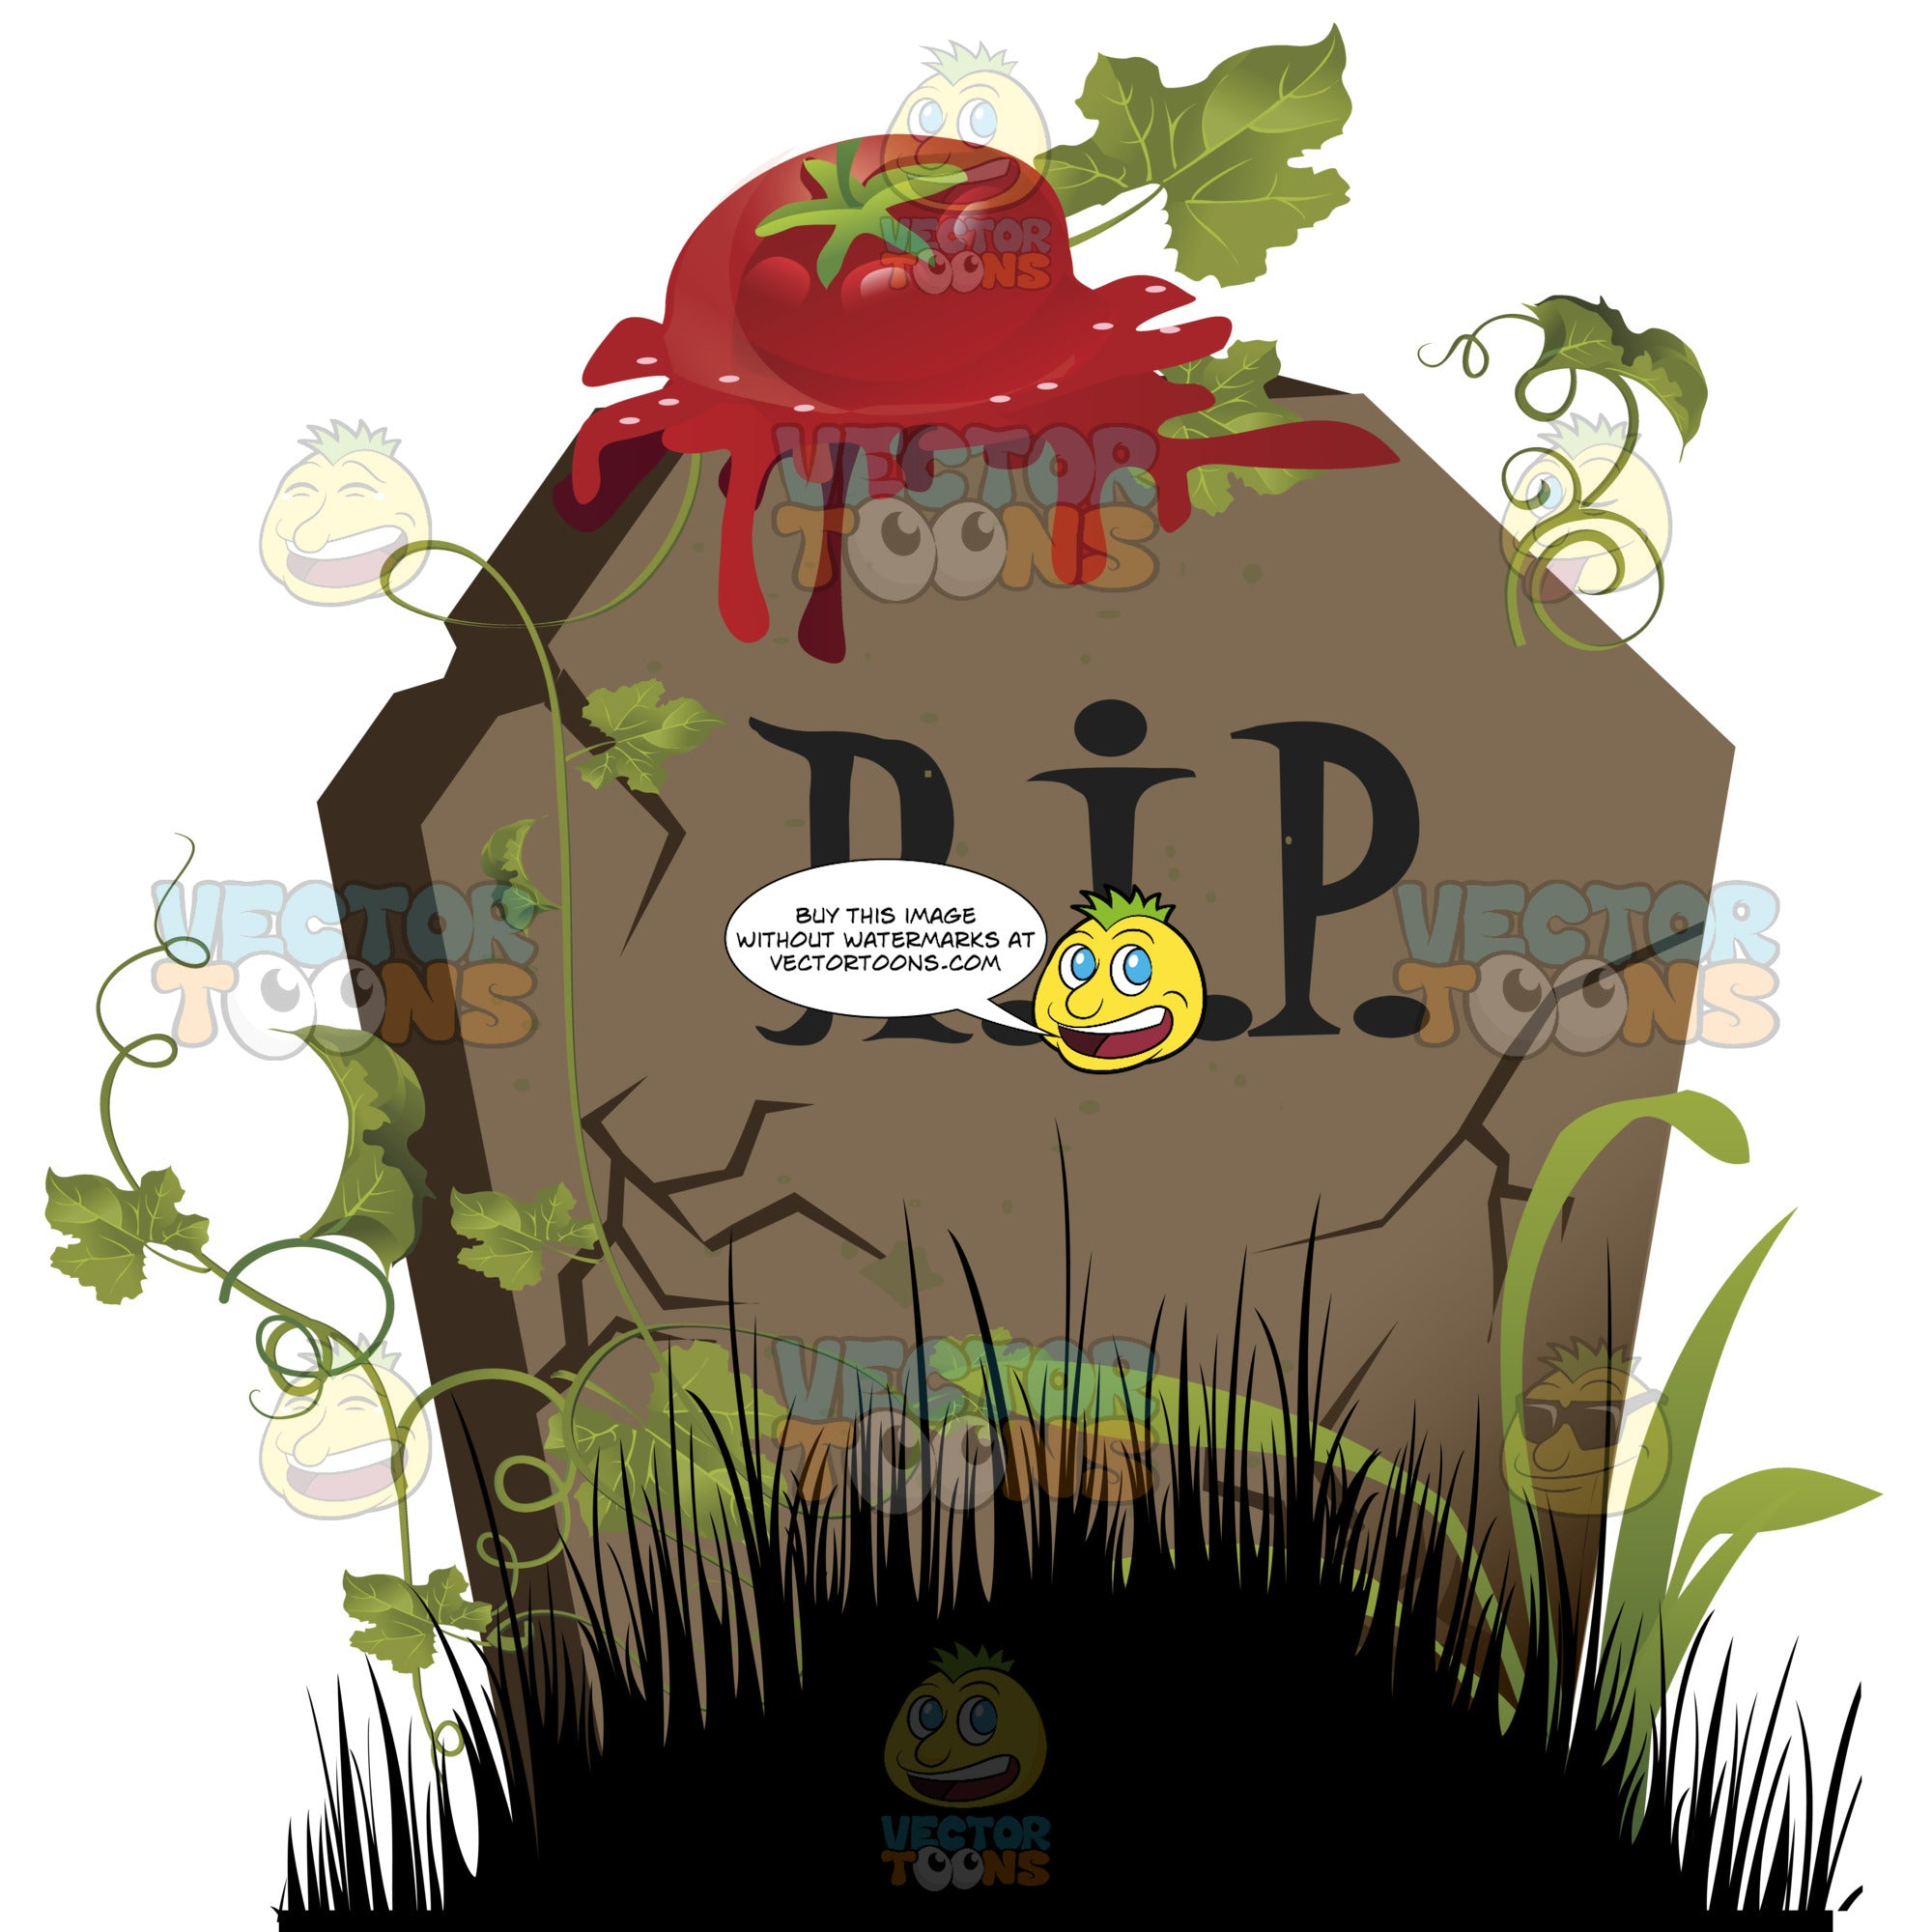 Cracked Gravestone With Squashed Tomato On Top Of It, 'R.i.p.' Written On Grave Marker, Surrounded By Green Vines, Tall Black Grass